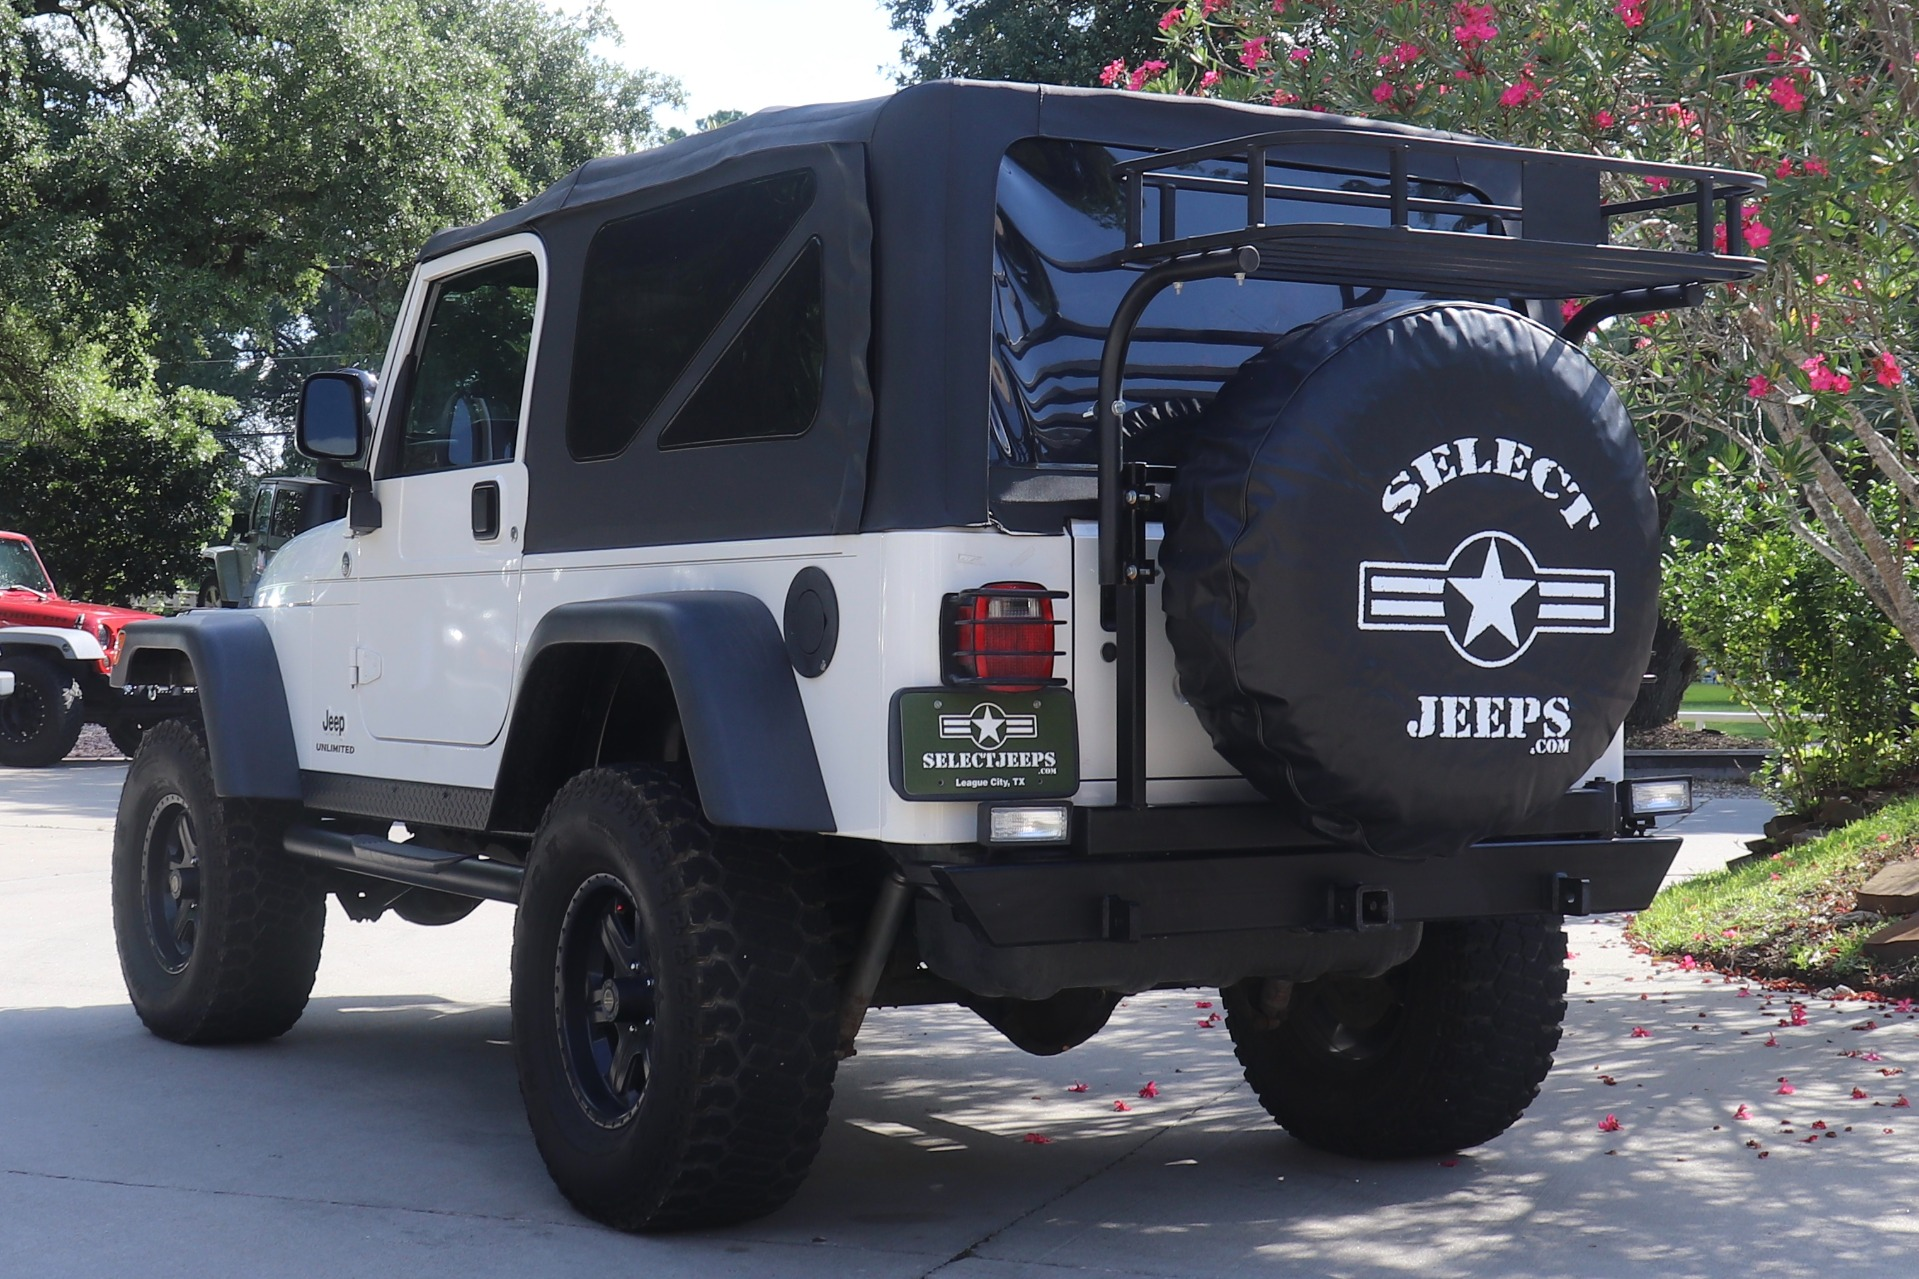 Used 2005 Jeep Wrangler Unlimited For Sale ($25,995 ...